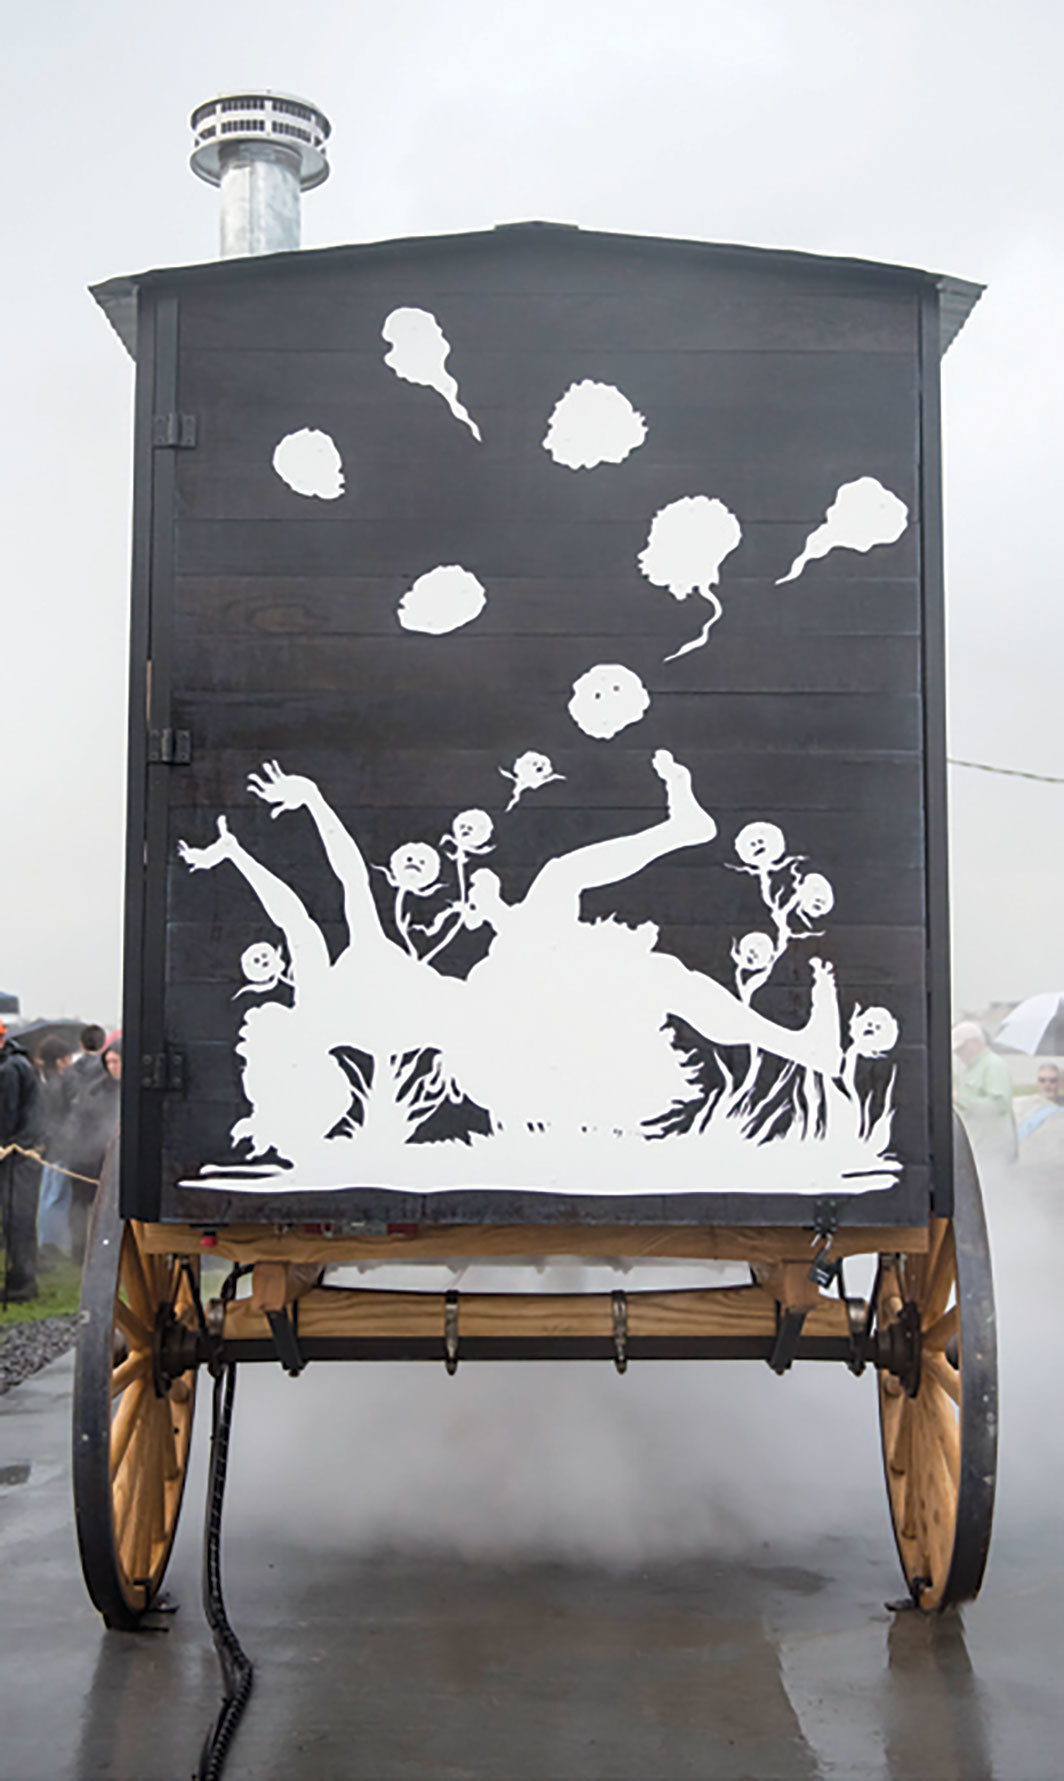 *Kara Walker, _The Katastwóf Karavan_, 2018, mixed media.* Installation view, Algiers Point, New Orleans. From Prospect.4. Photo: J Caldwell.